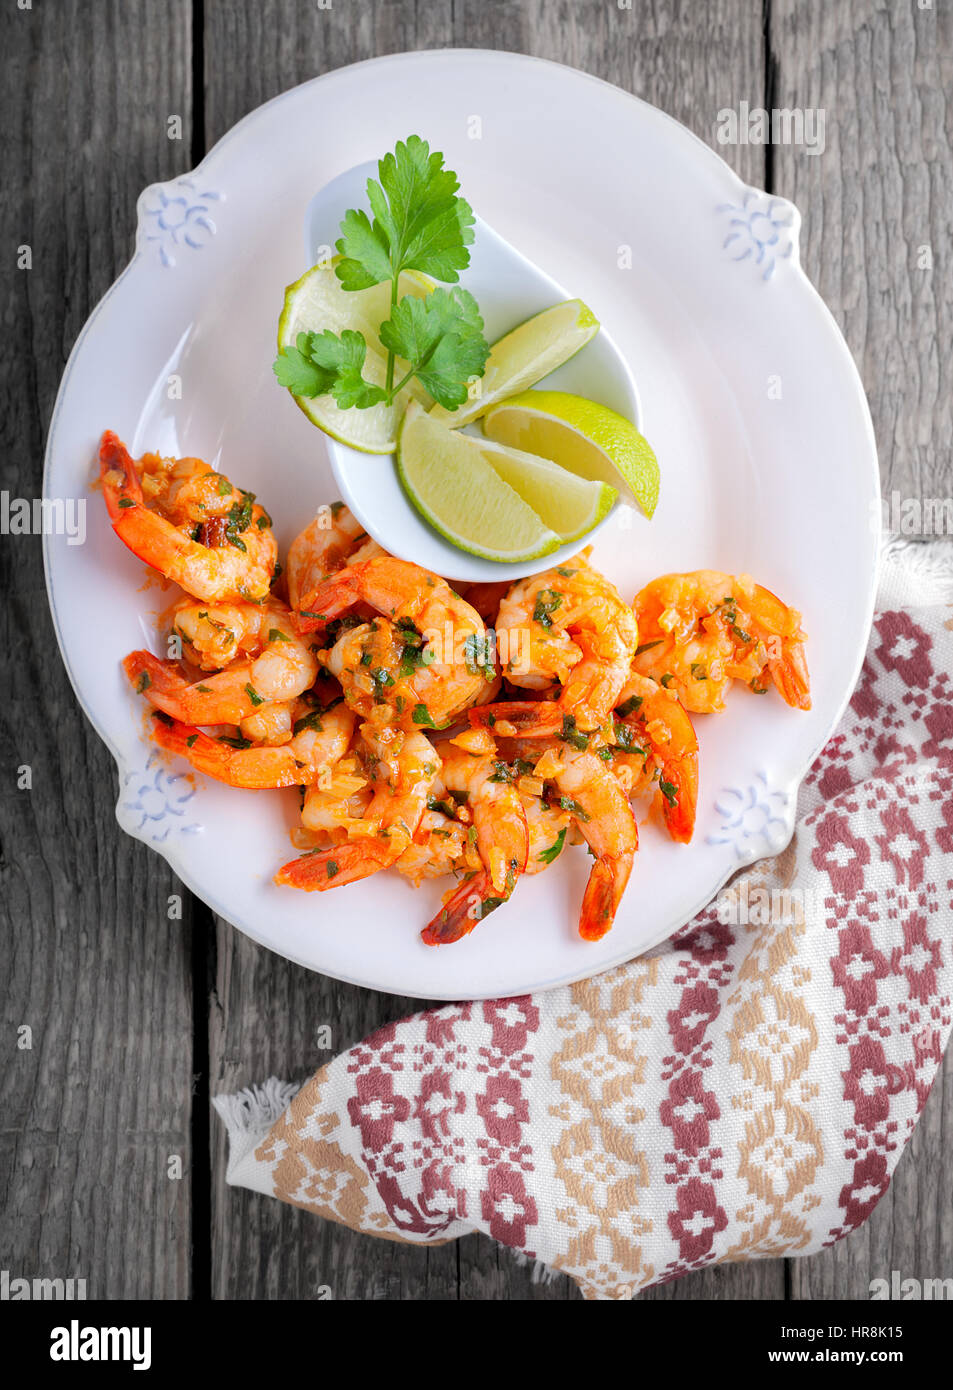 Fried Prawns with lemon served on a wooden surface. - Stock Image